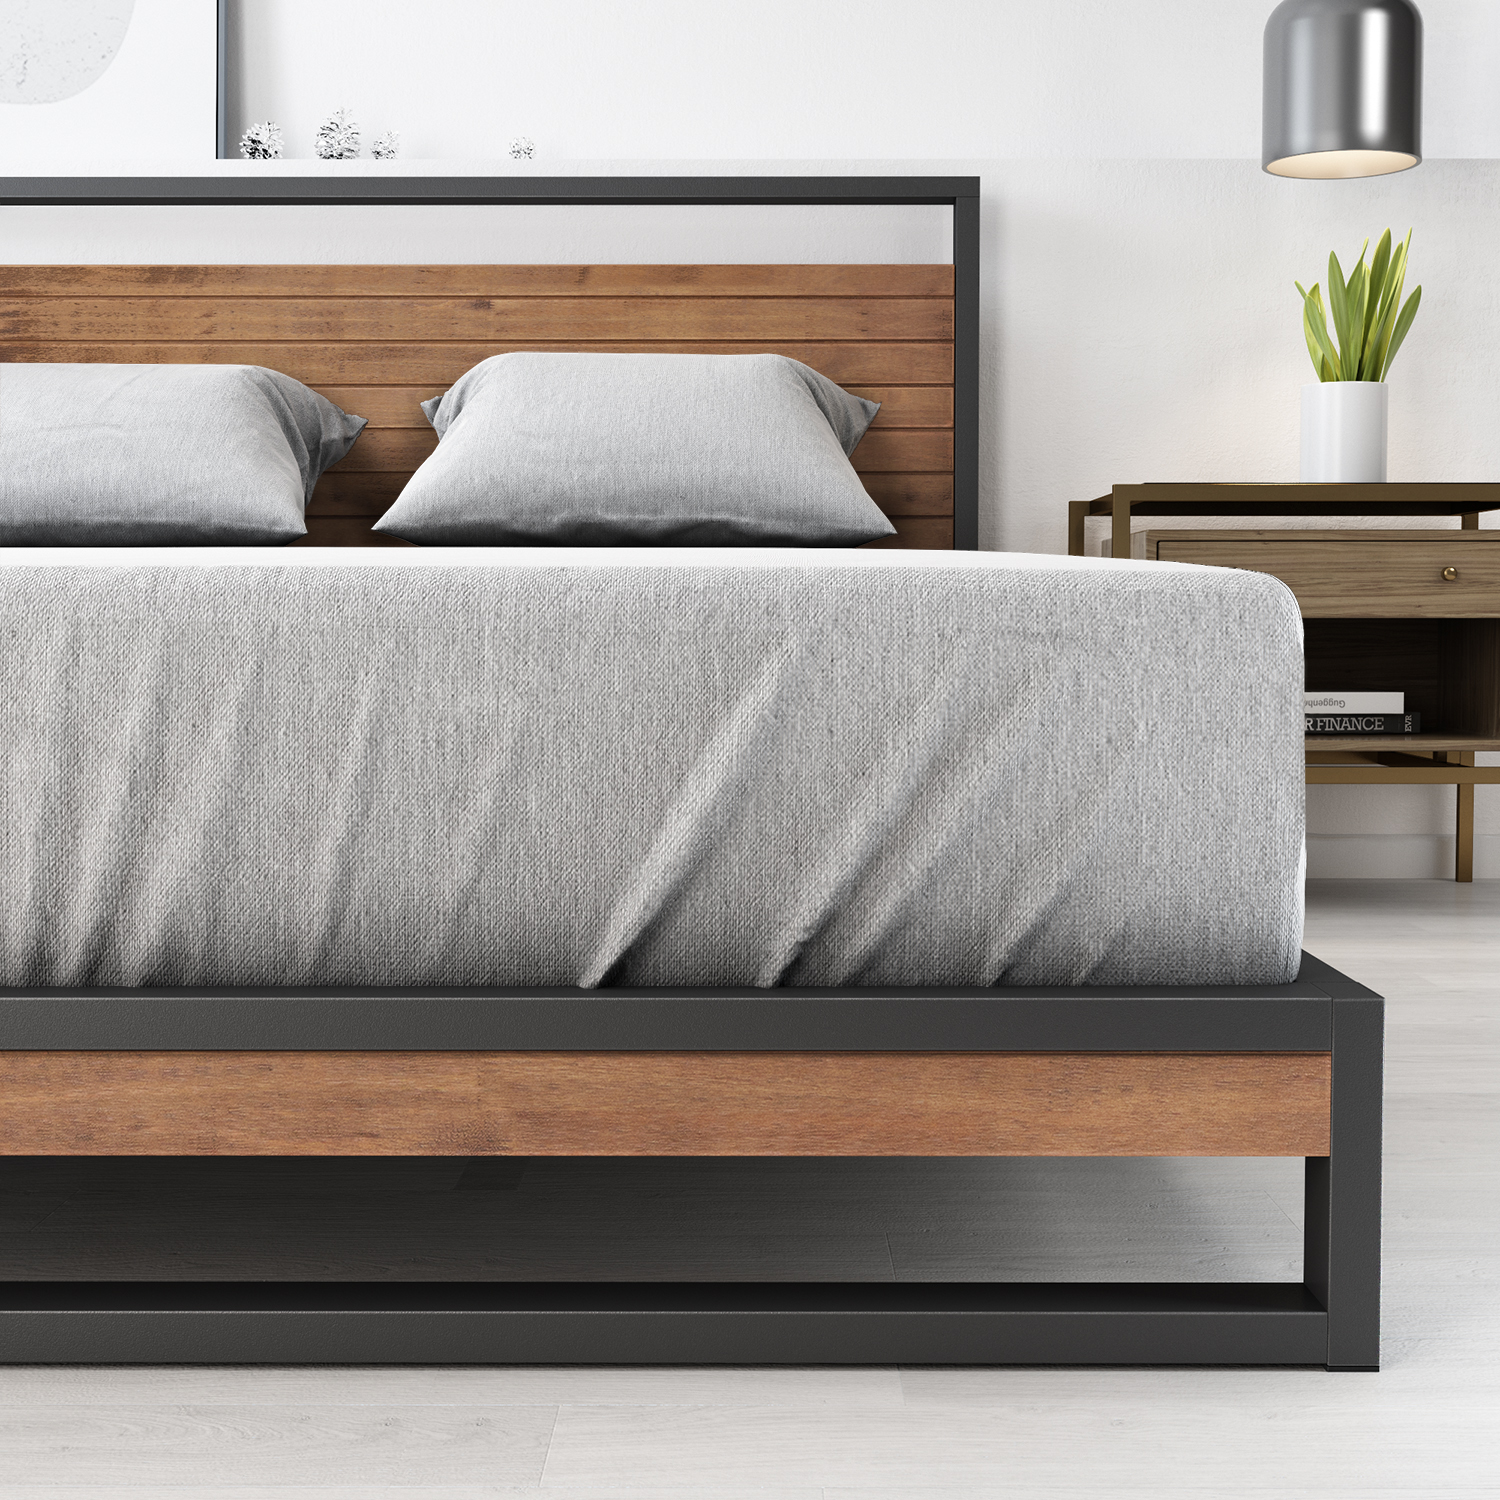 Zinus-Ironline-Metal-Wood-Bed-Frame-Queen-Single-Double-King-Base-Mattress-Pine thumbnail 5